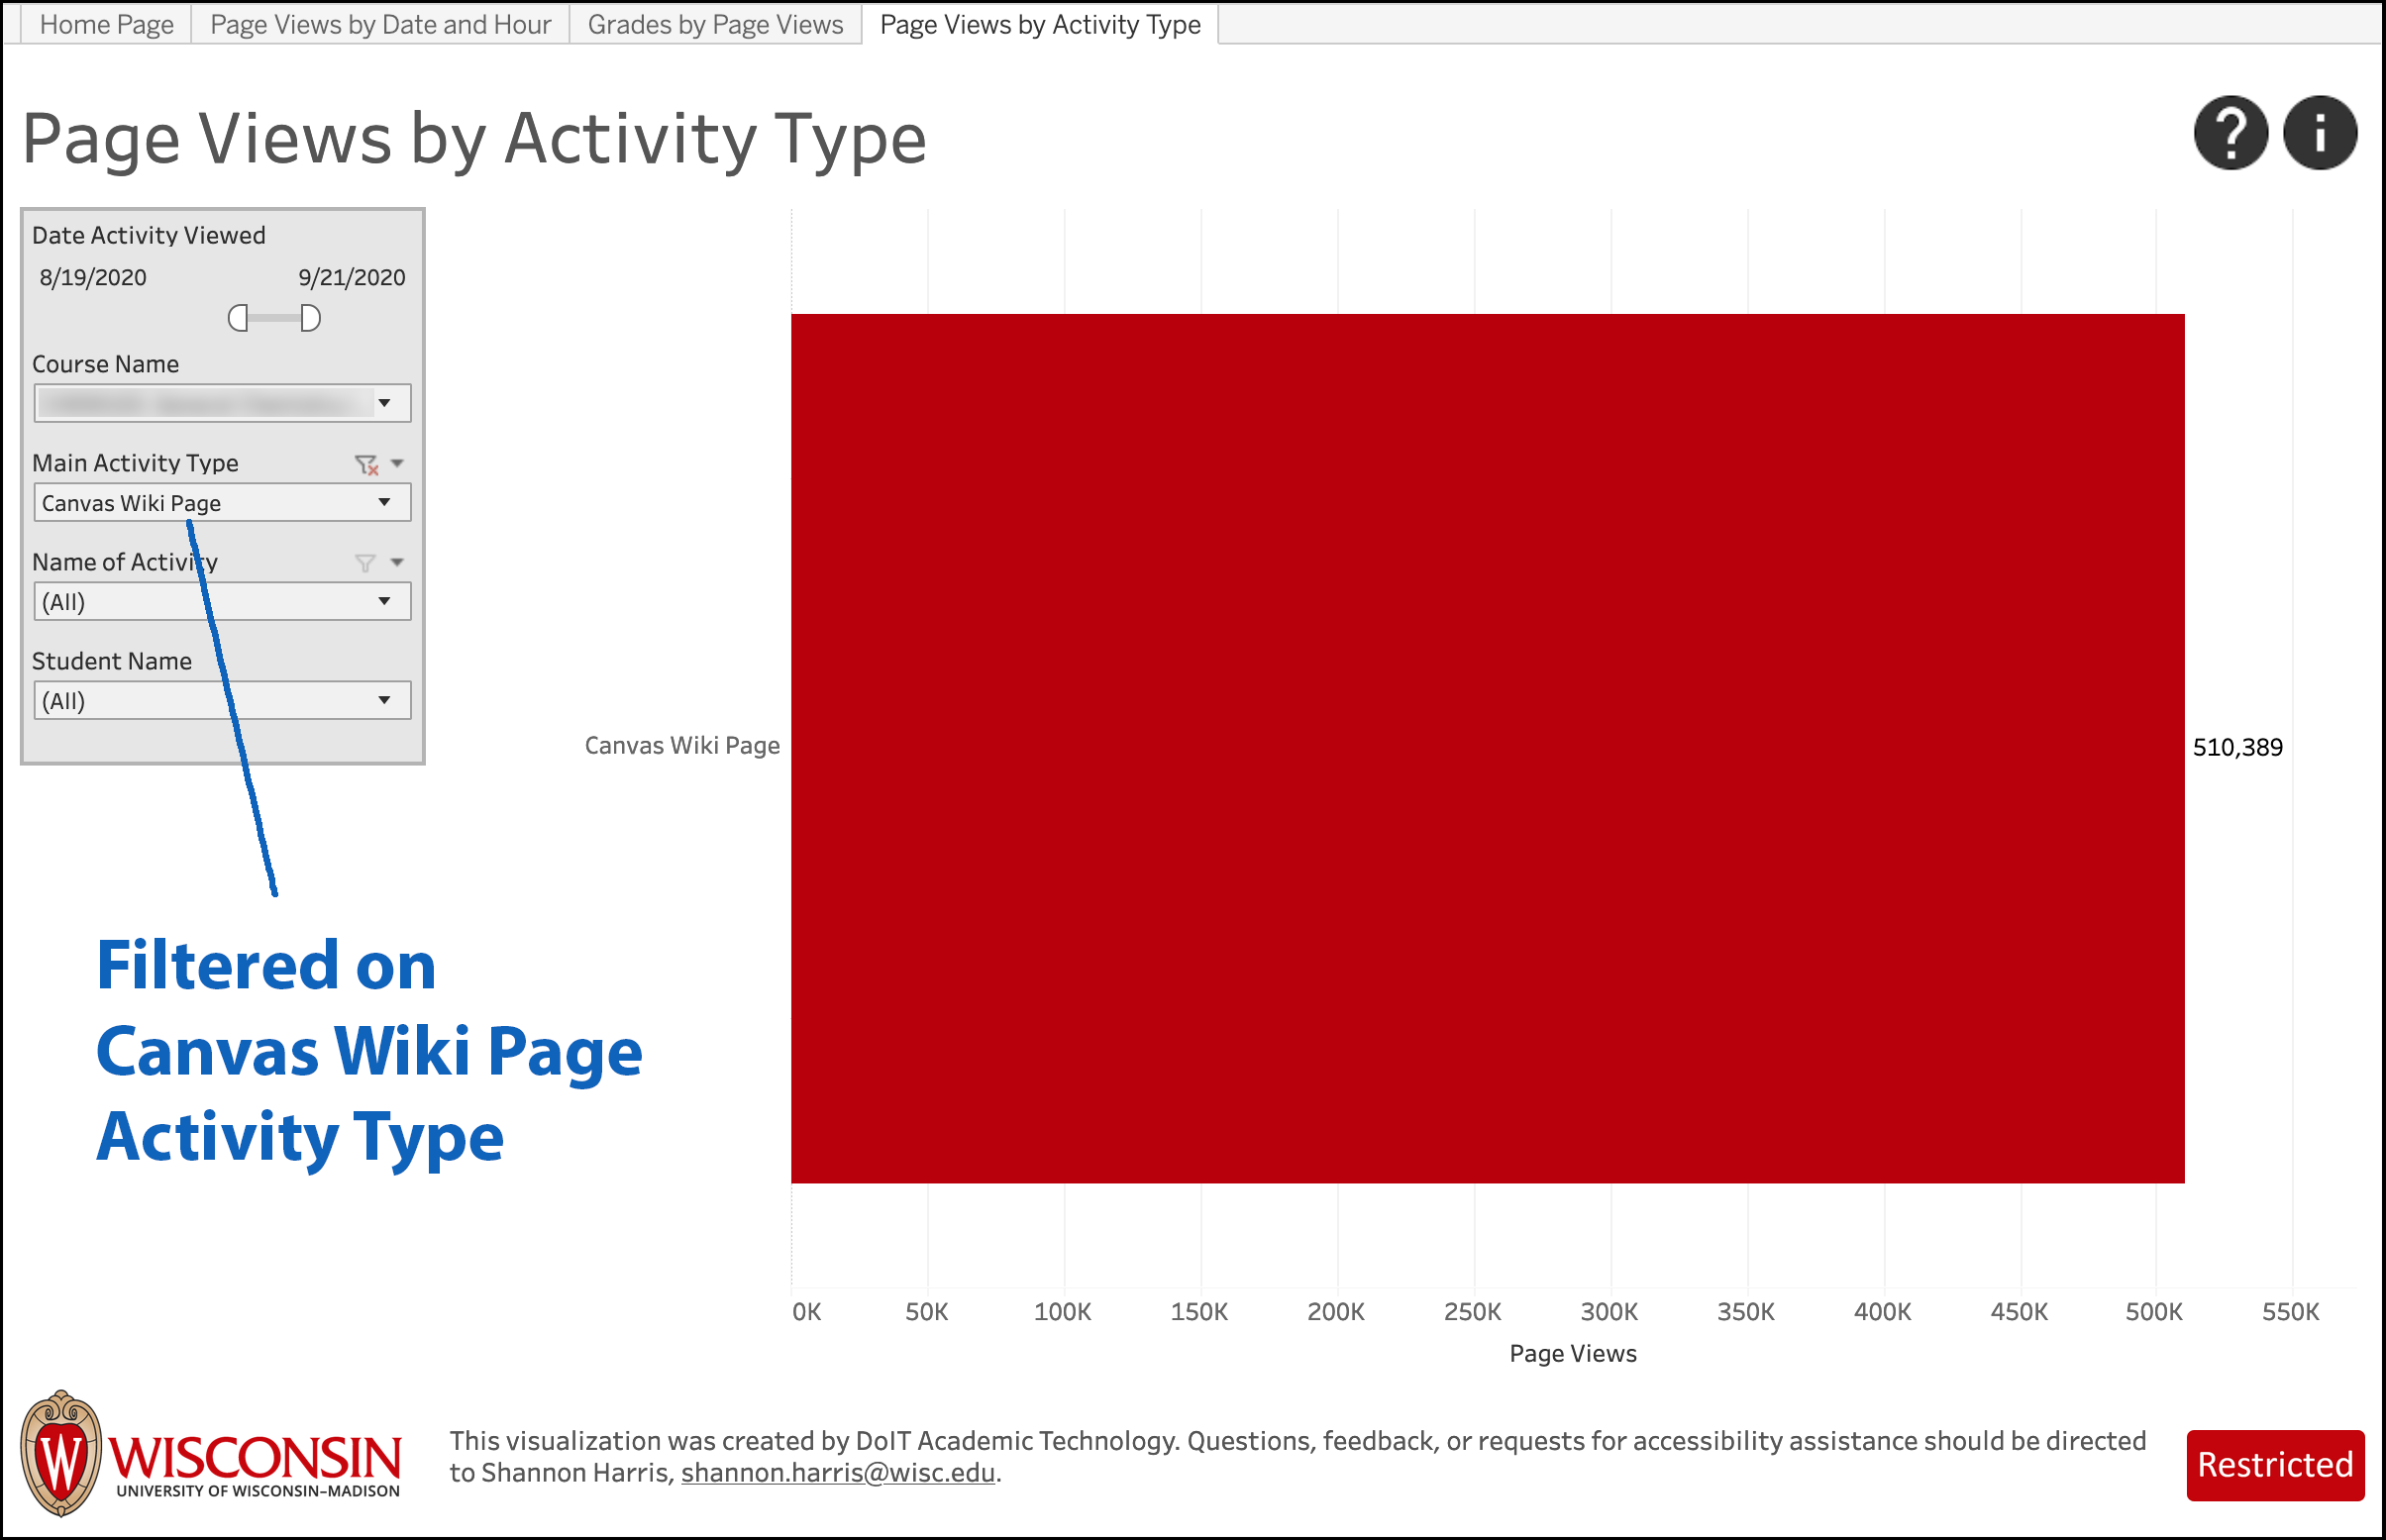 LEAD screenshot - Page Views by Activity Type, filtered to Activity Type